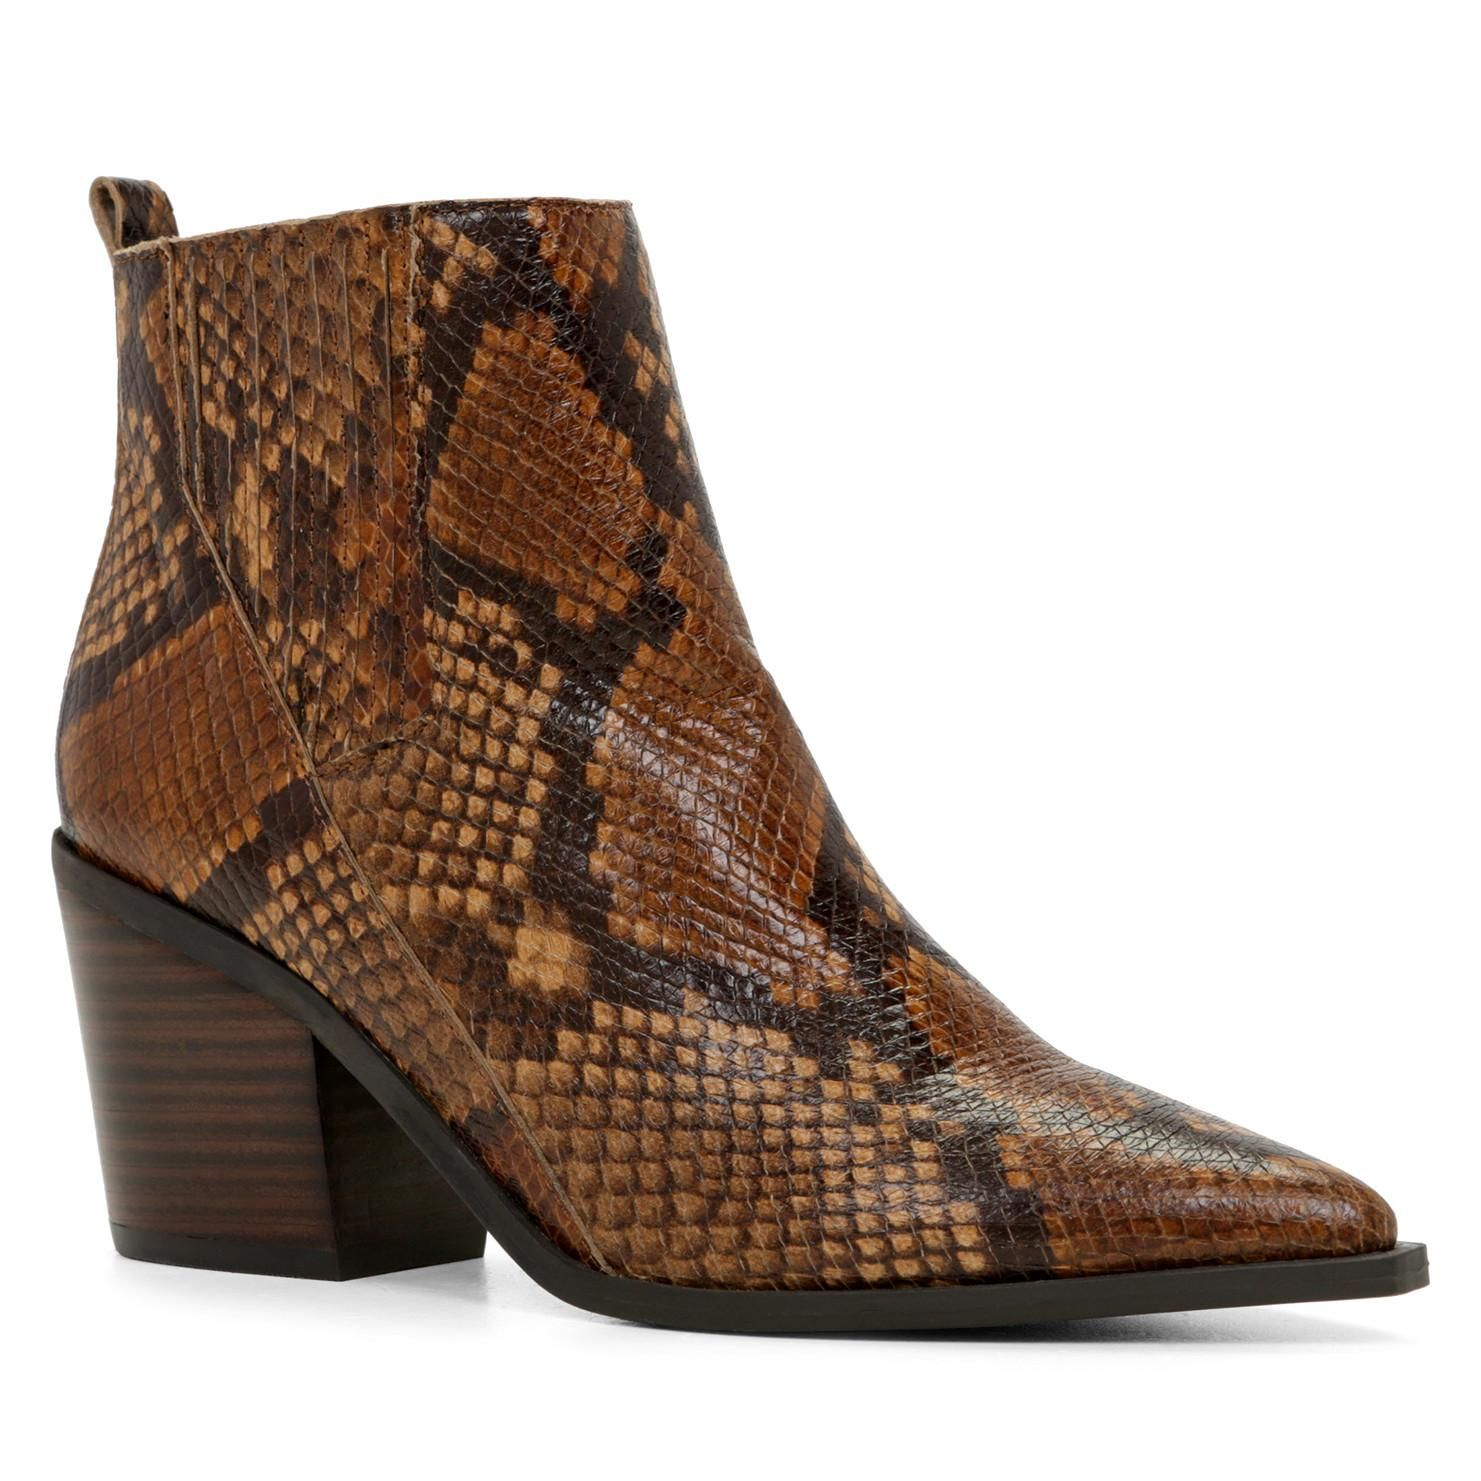 Make Snakeskin Boots The Next Thing You Buy Best Ankle Boots Boots Snakeskin Boots